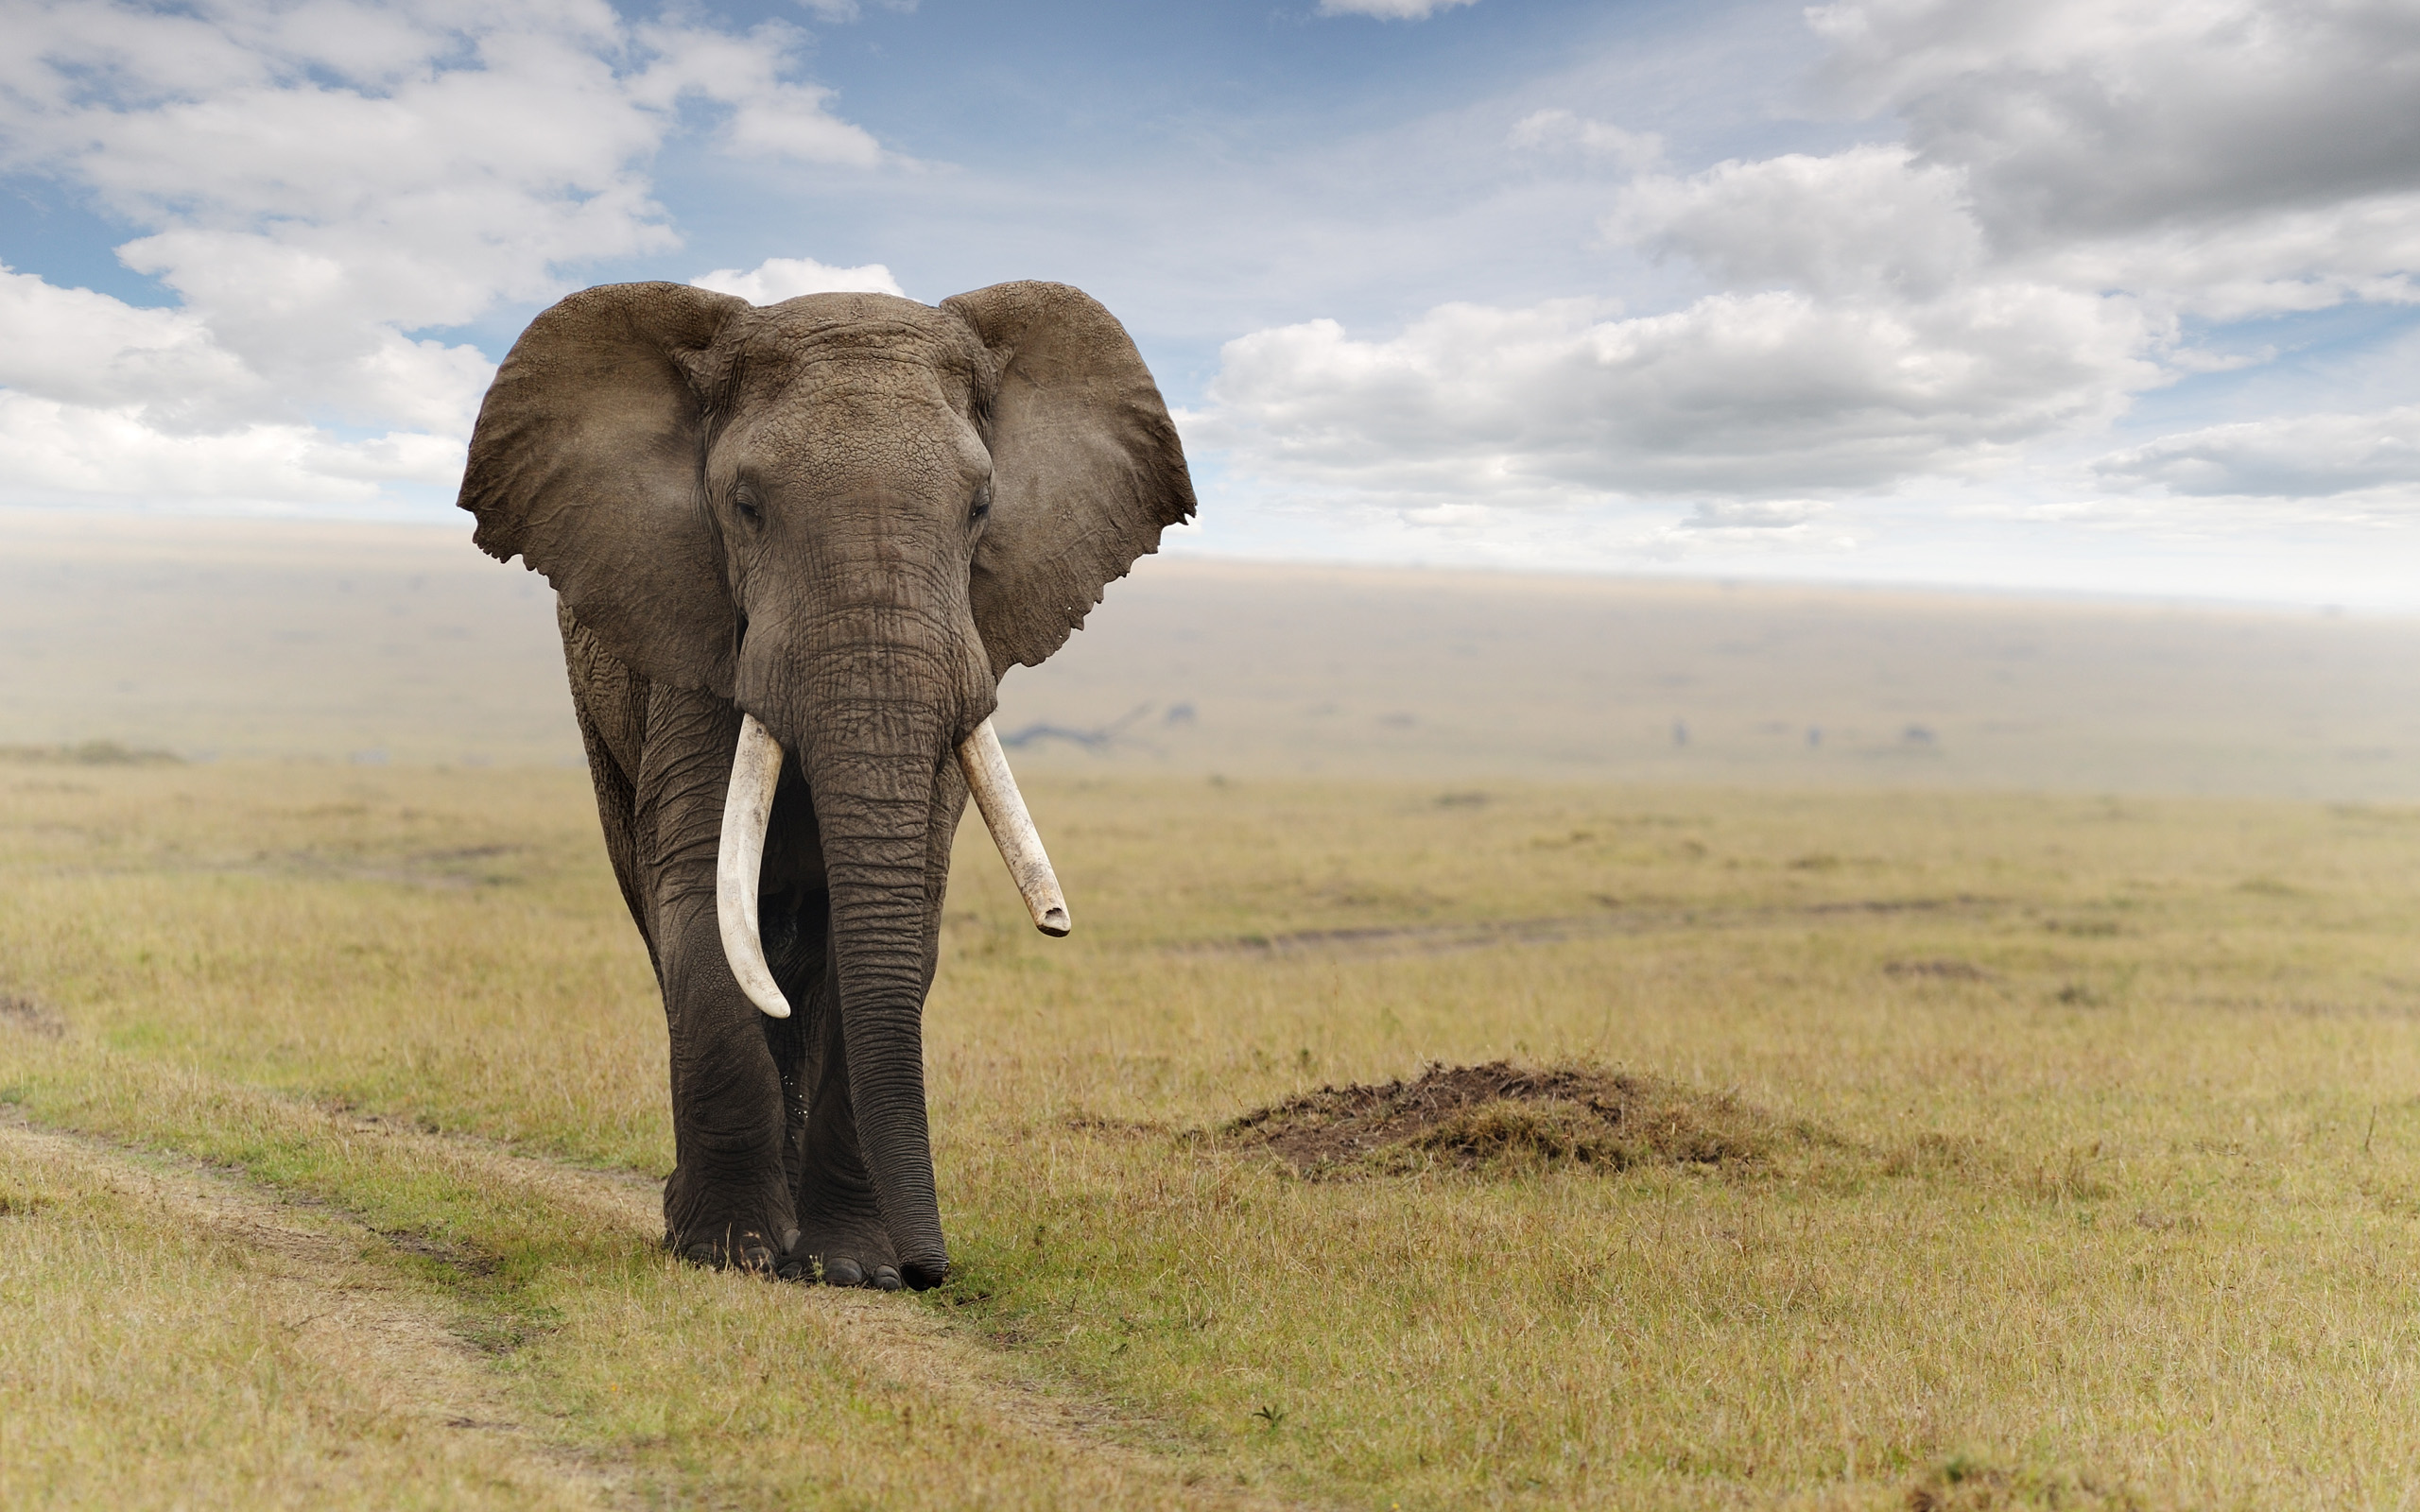 Elephant Wallpaper Free Downloads